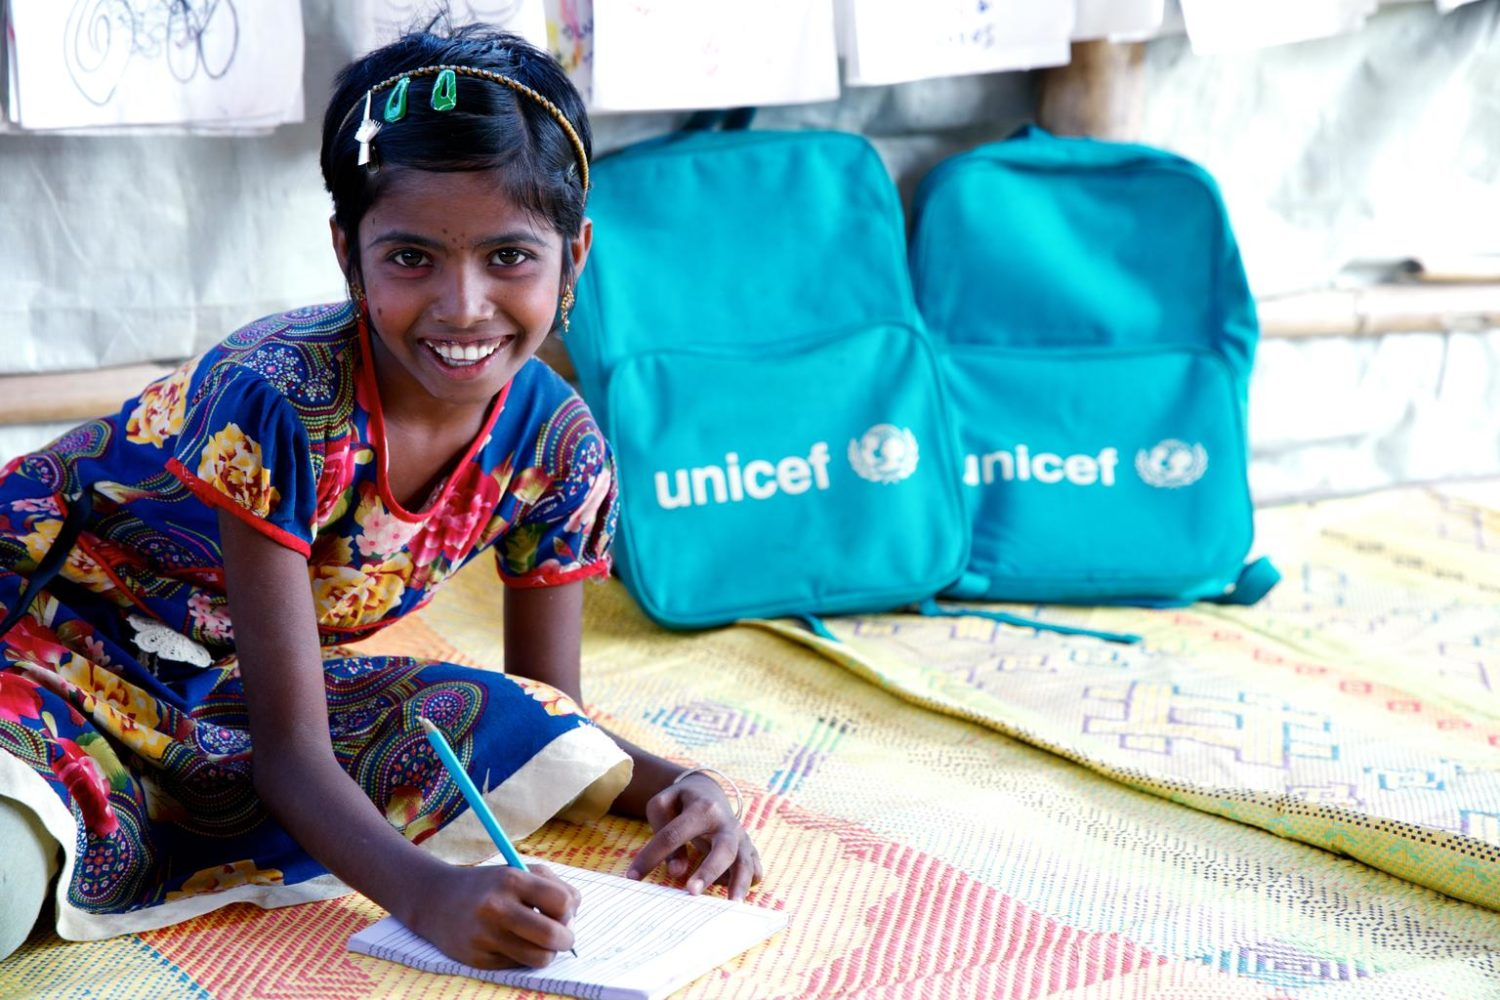 UNICEF/2018/Sokol/Ronhingya/Refugee/Children/Boys/School børnekonventionen